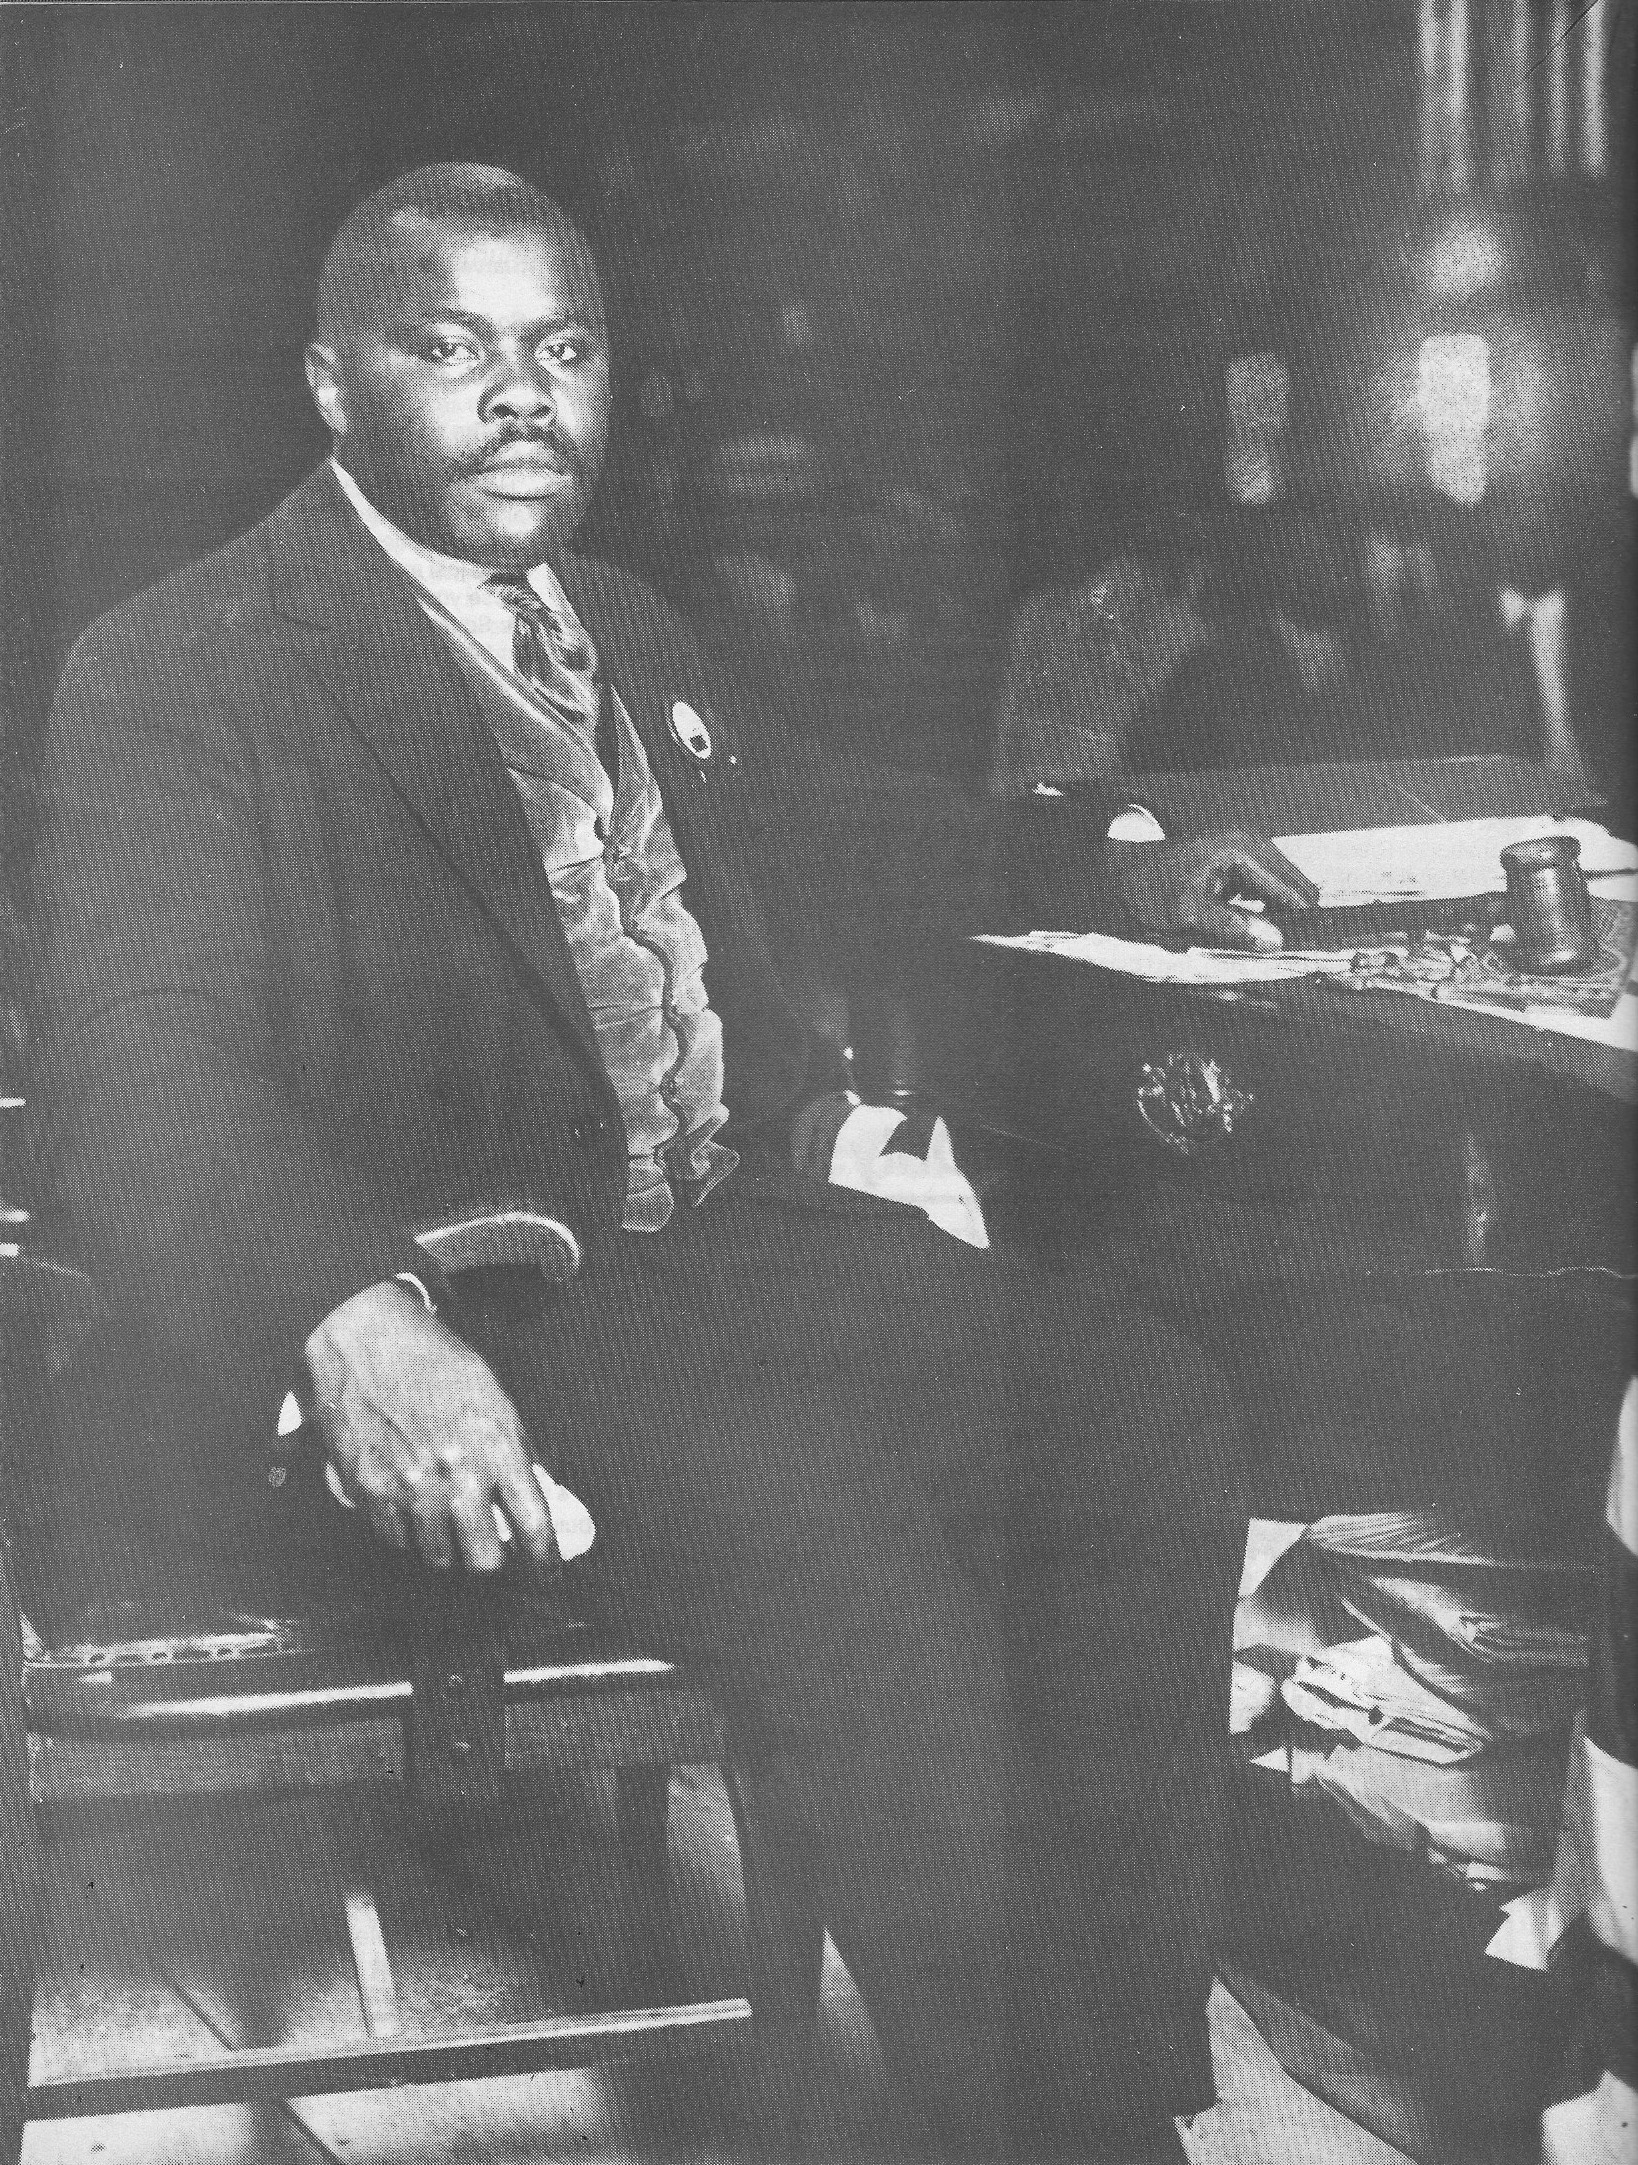 Best of The Beat on Afropop: 130 Years of Marcus Garvey